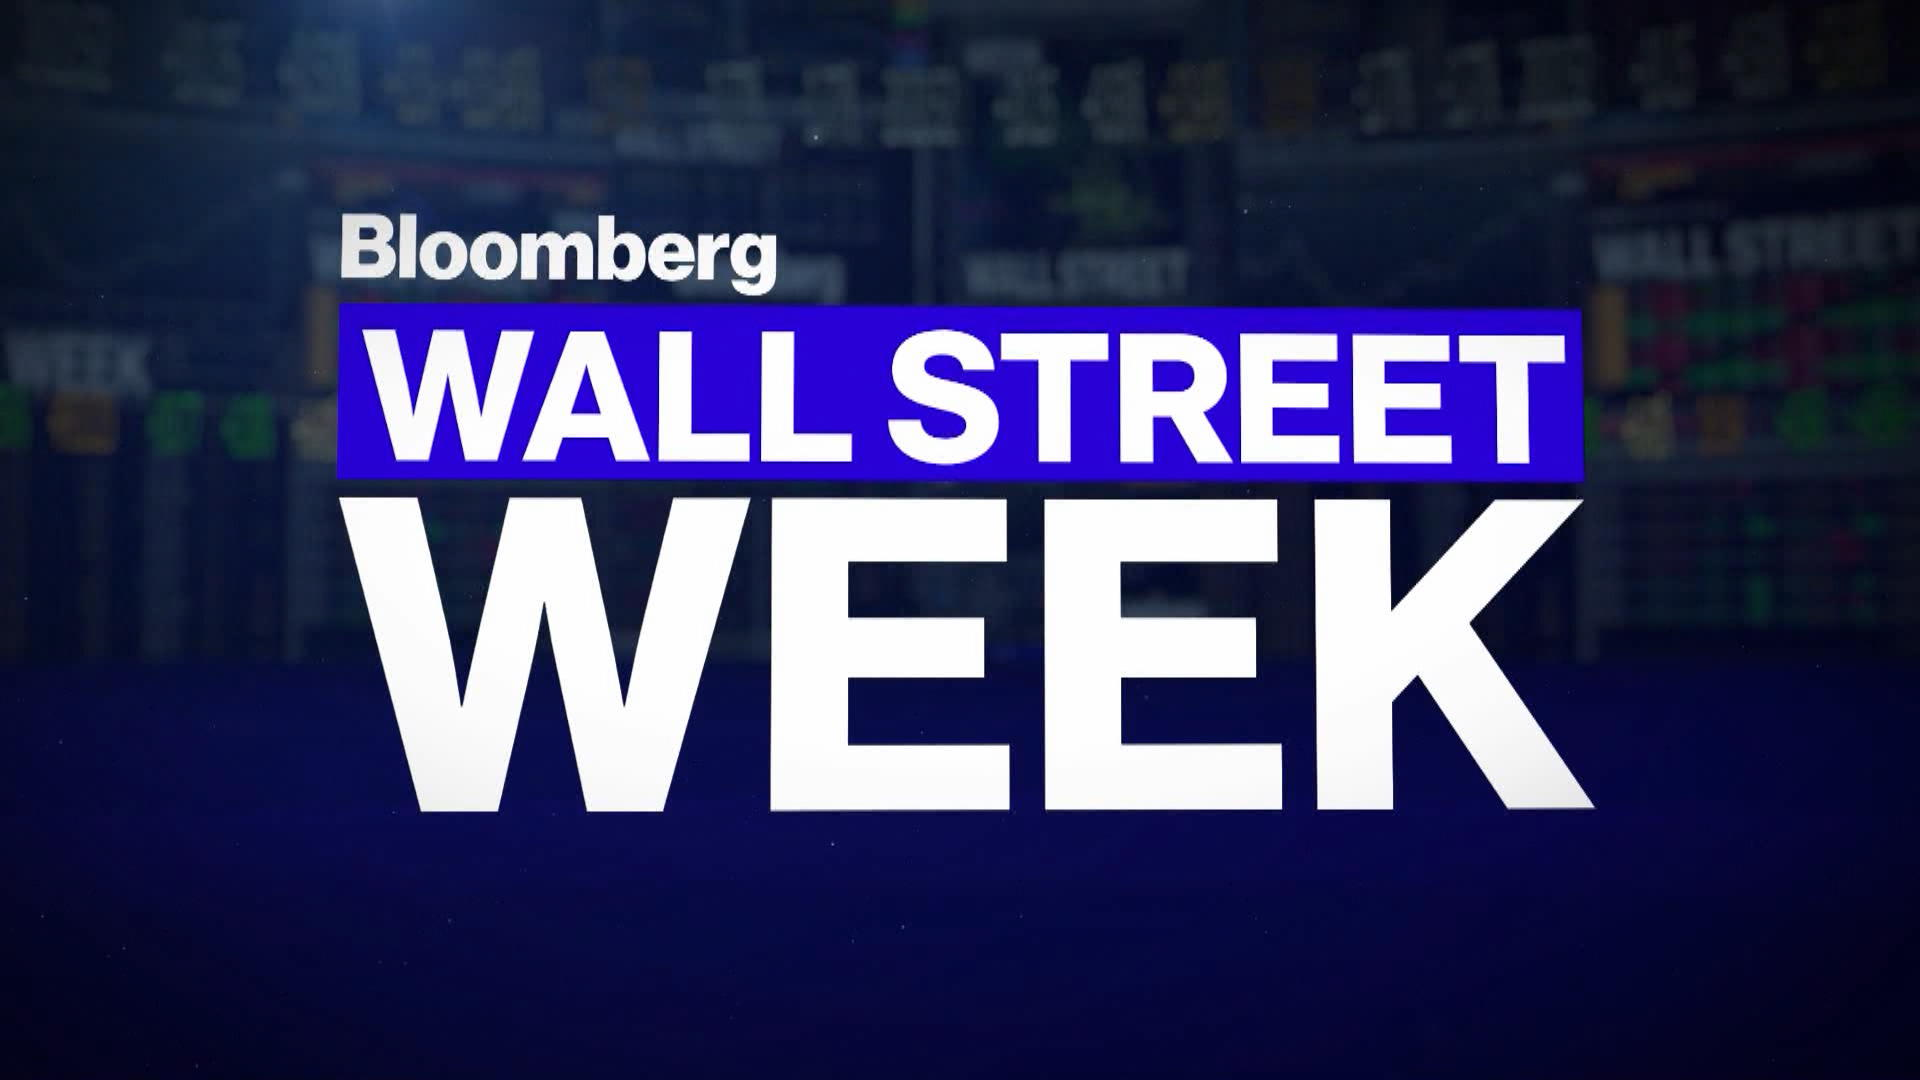 Wall Street Week Full Show 02 07 20 Bloomberg Images, Photos, Reviews